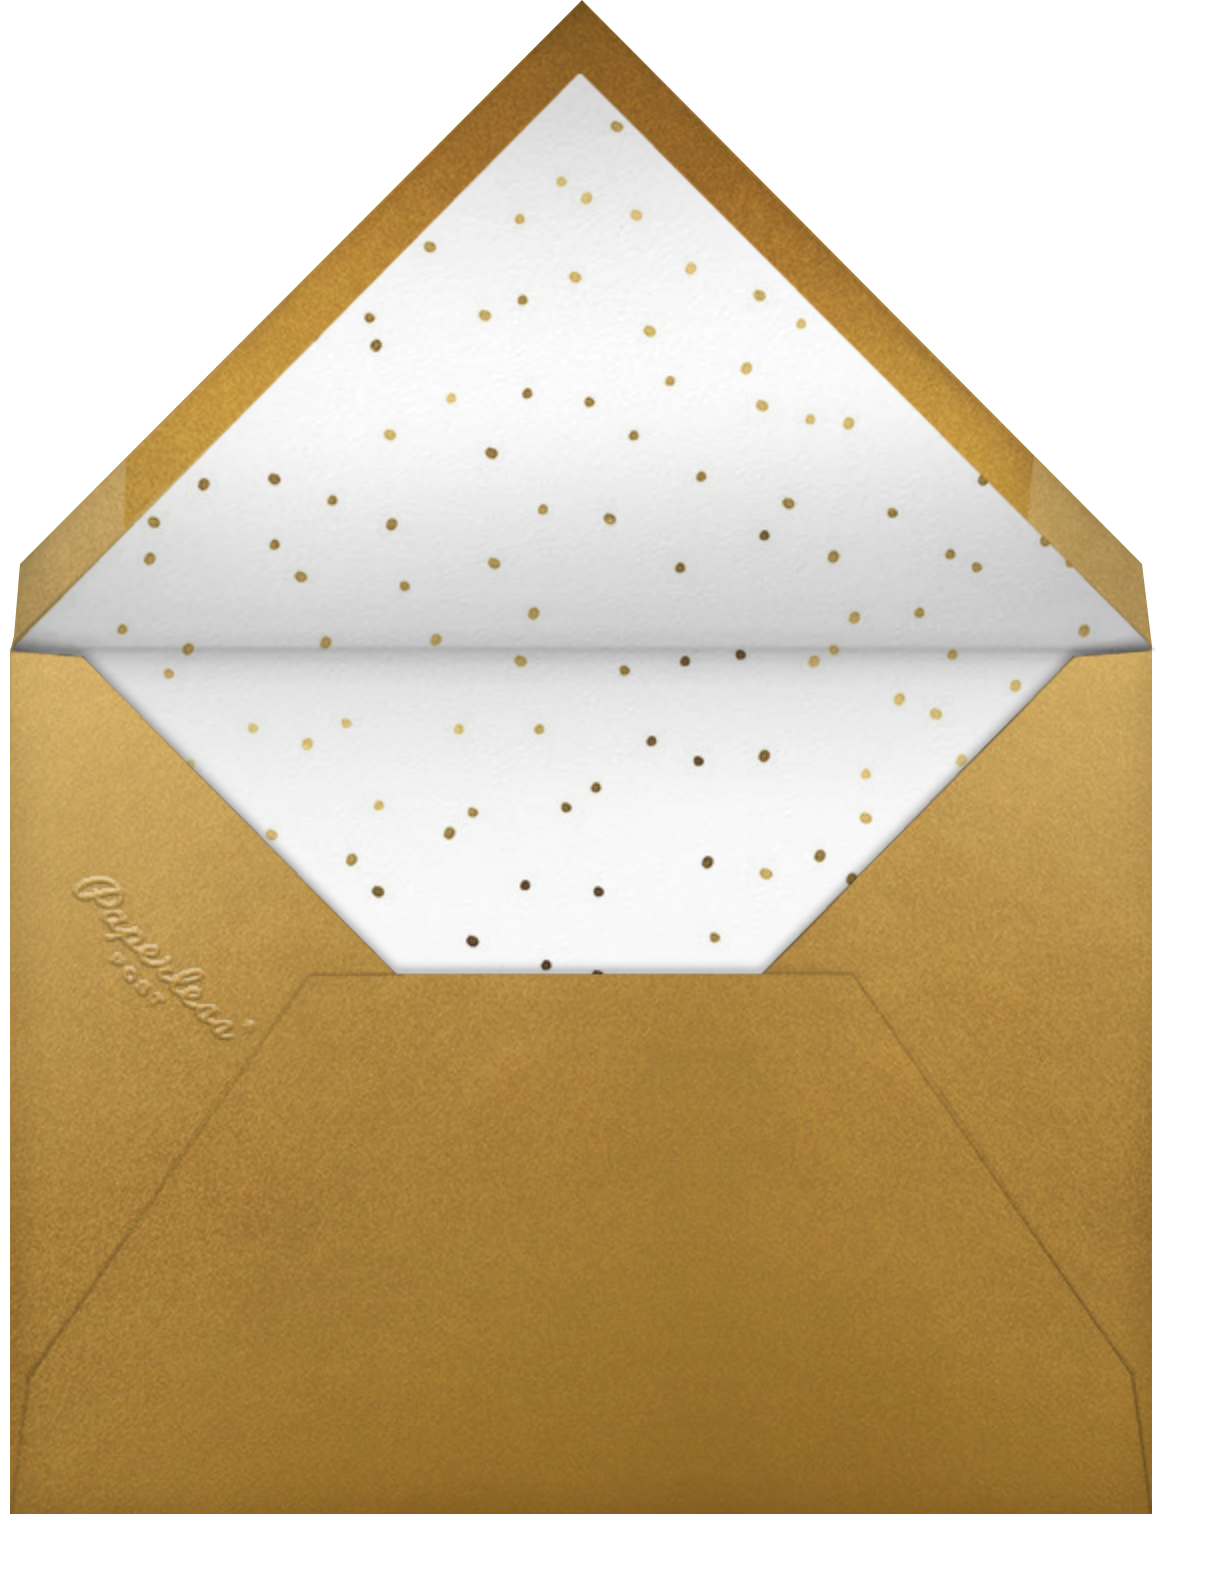 Curlicue Cheers - Pearl White - Paperless Post - New Year's Eve - envelope back